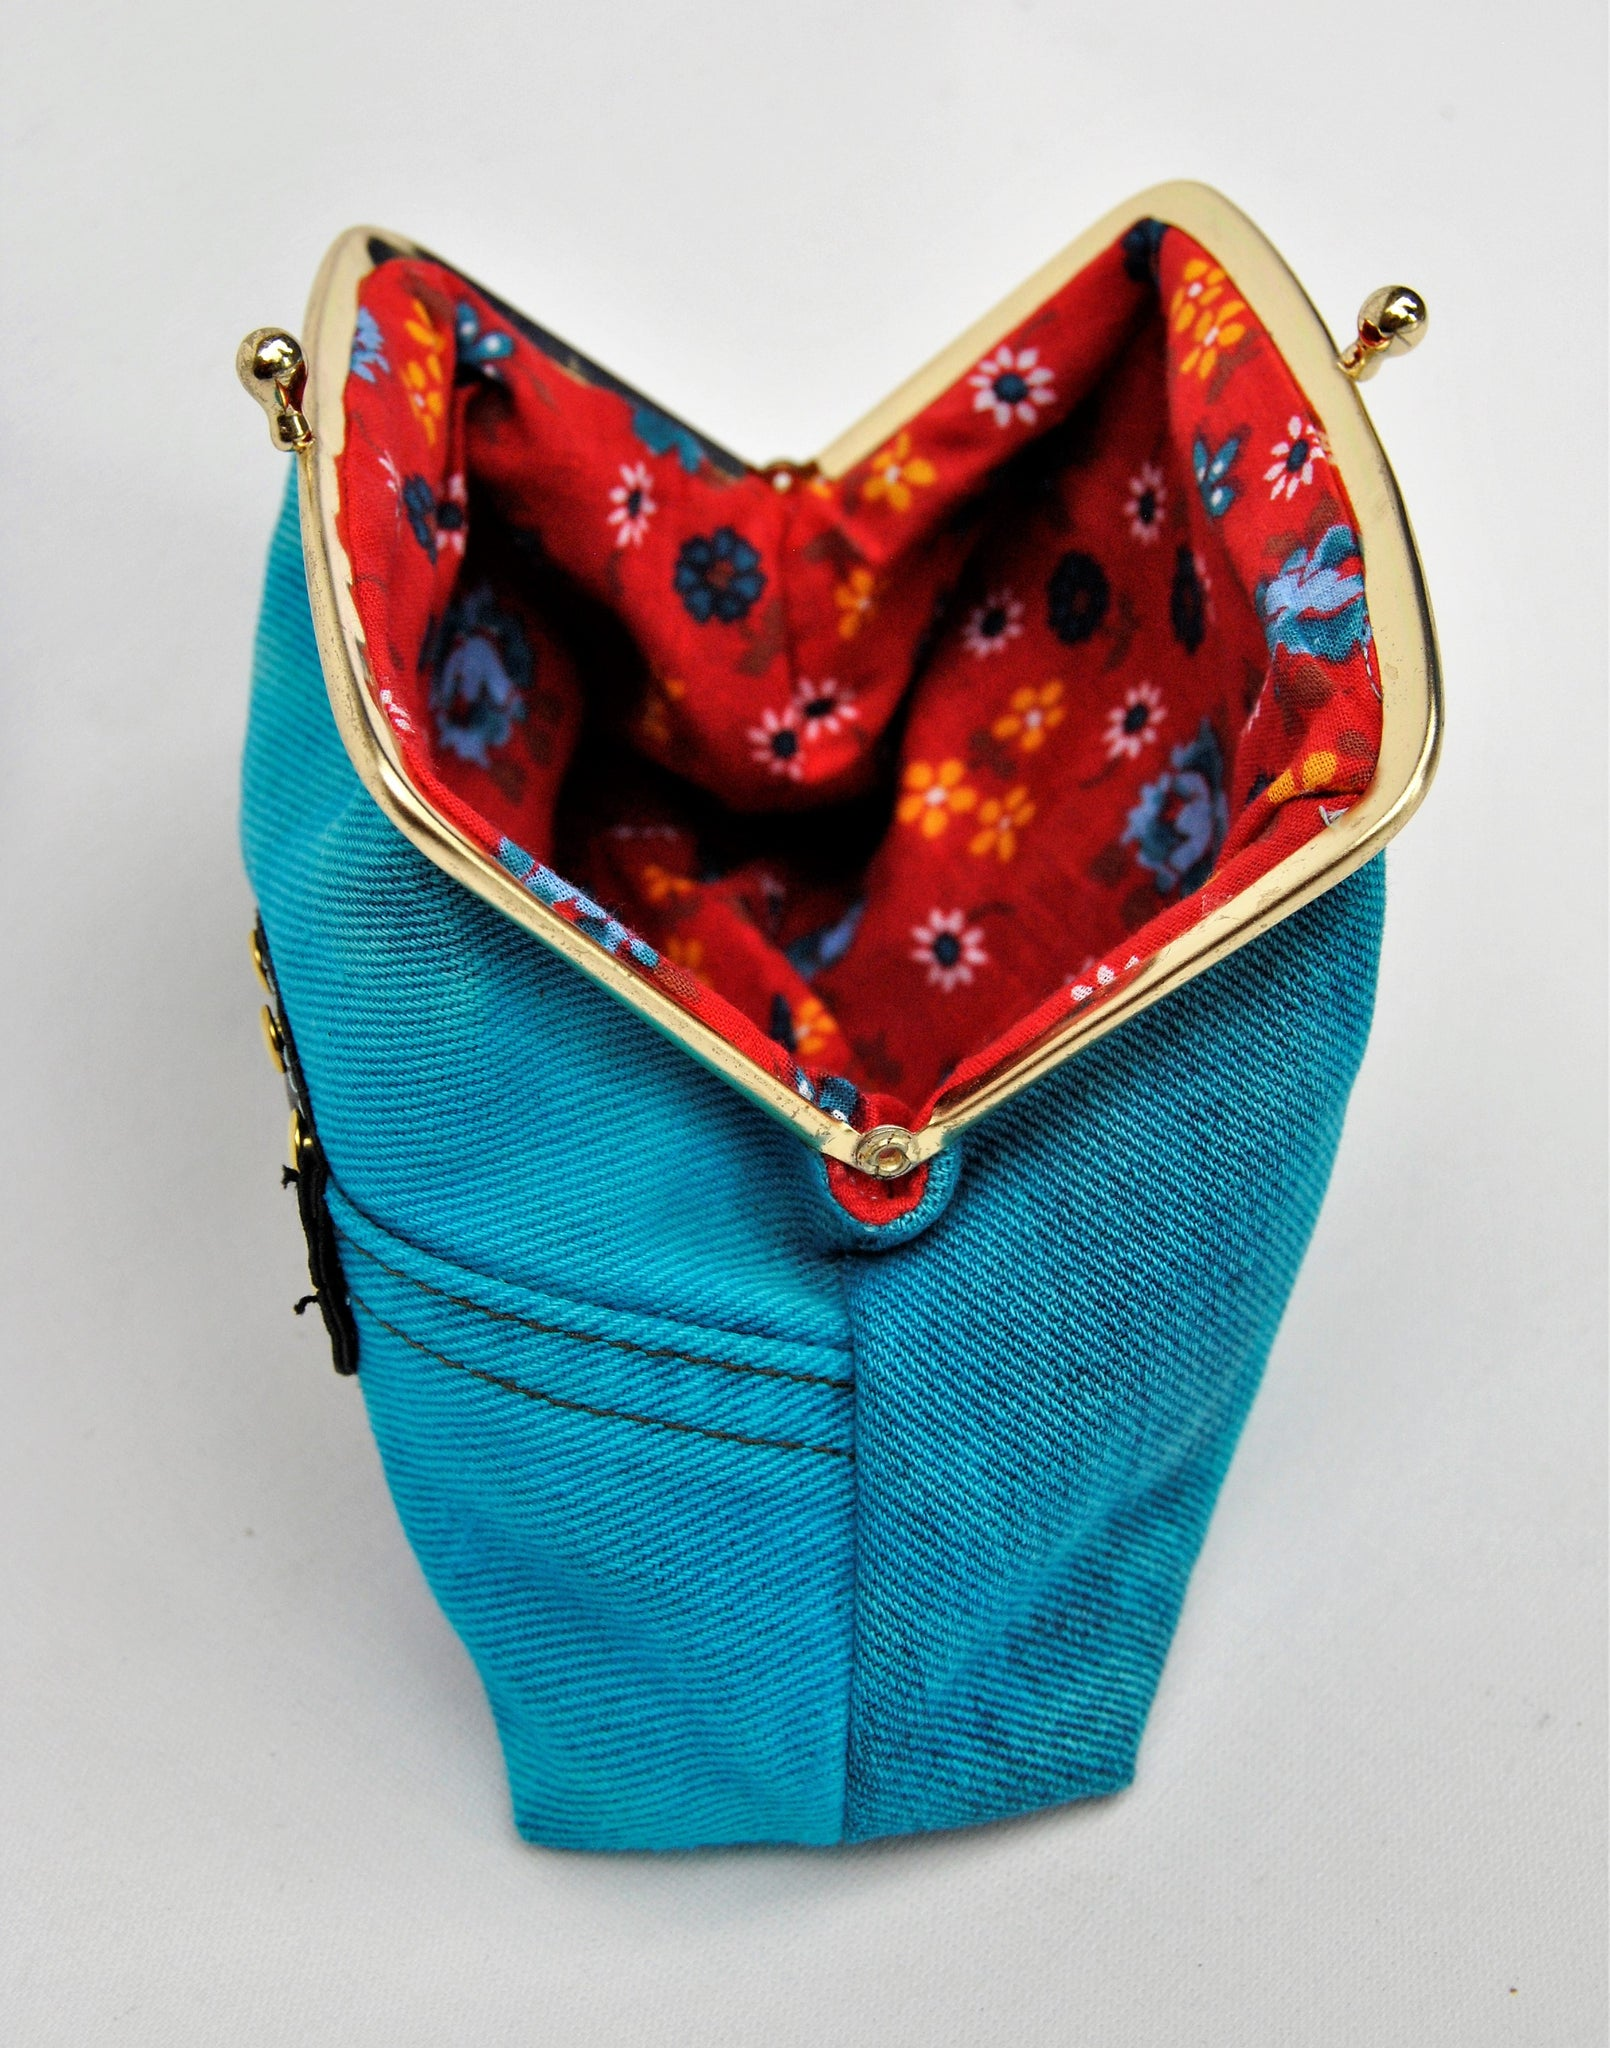 Heartbeat purse